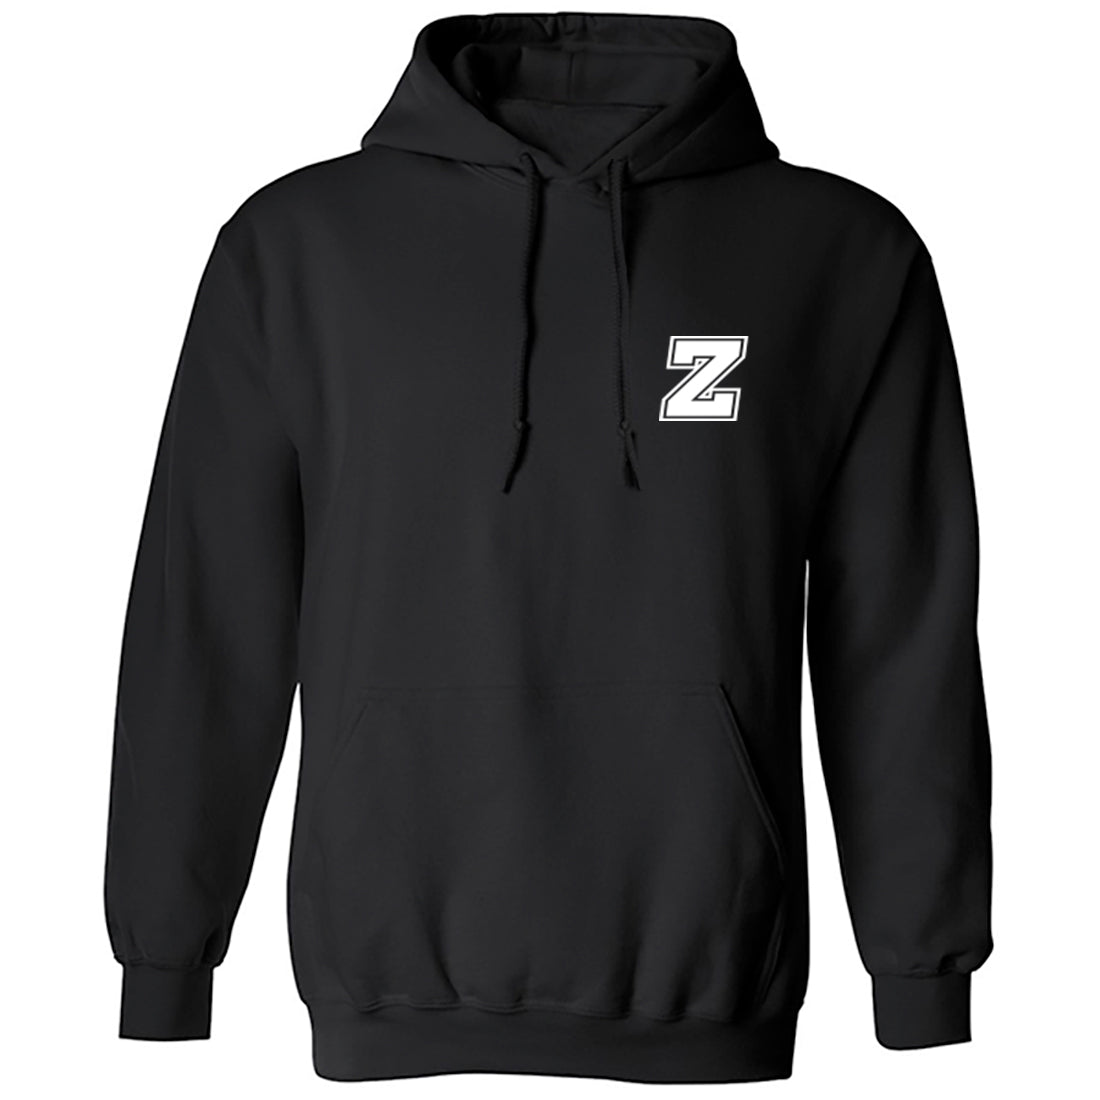 Initial 'Z' Pocket Print Unisex Hoodie K0942 - Illustrated Identity Ltd.